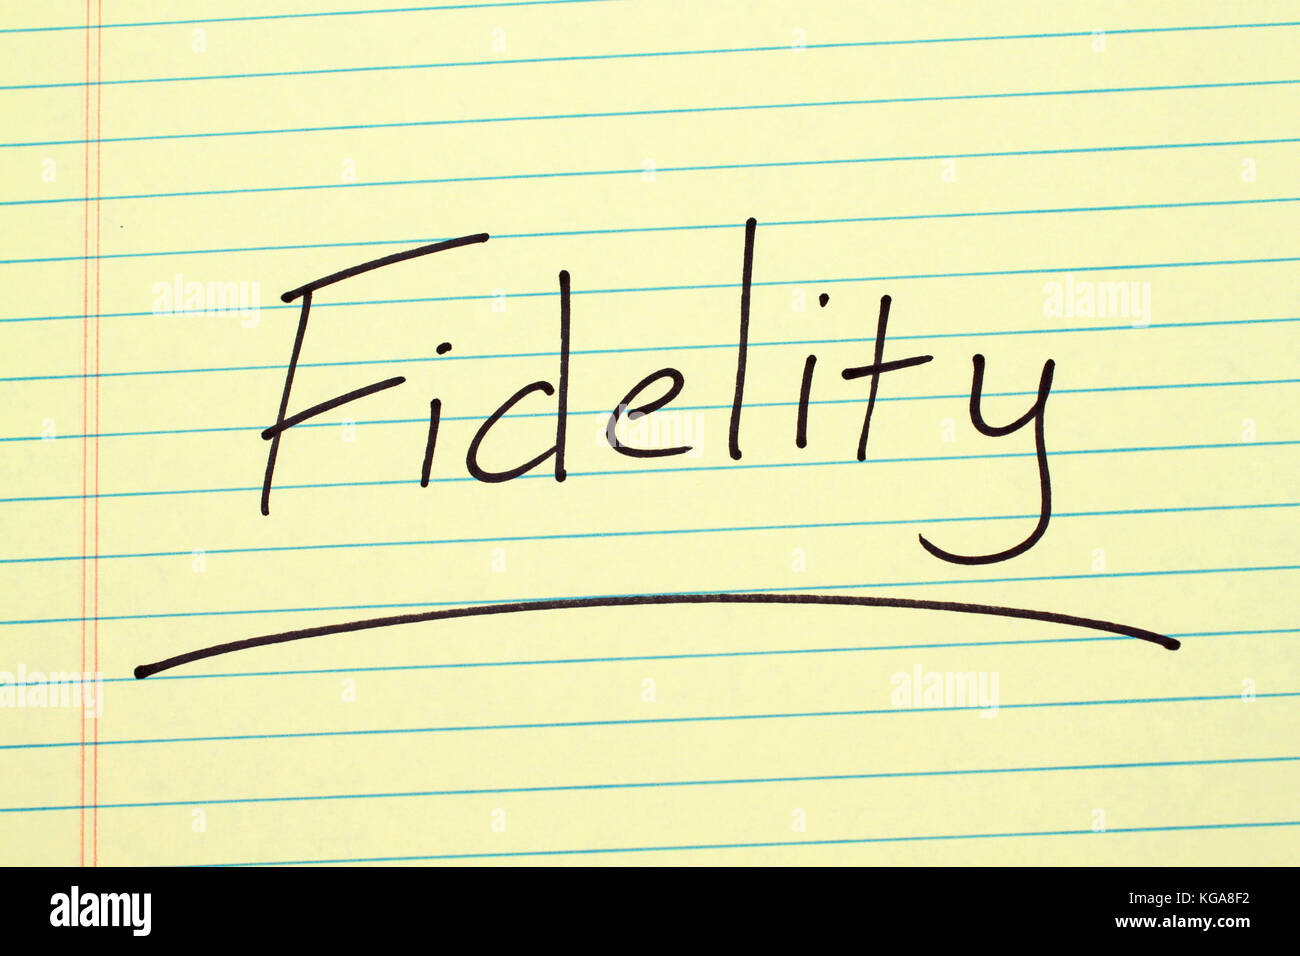 The word 'Fidelity' underlined on a yellow legal pad - Stock Image